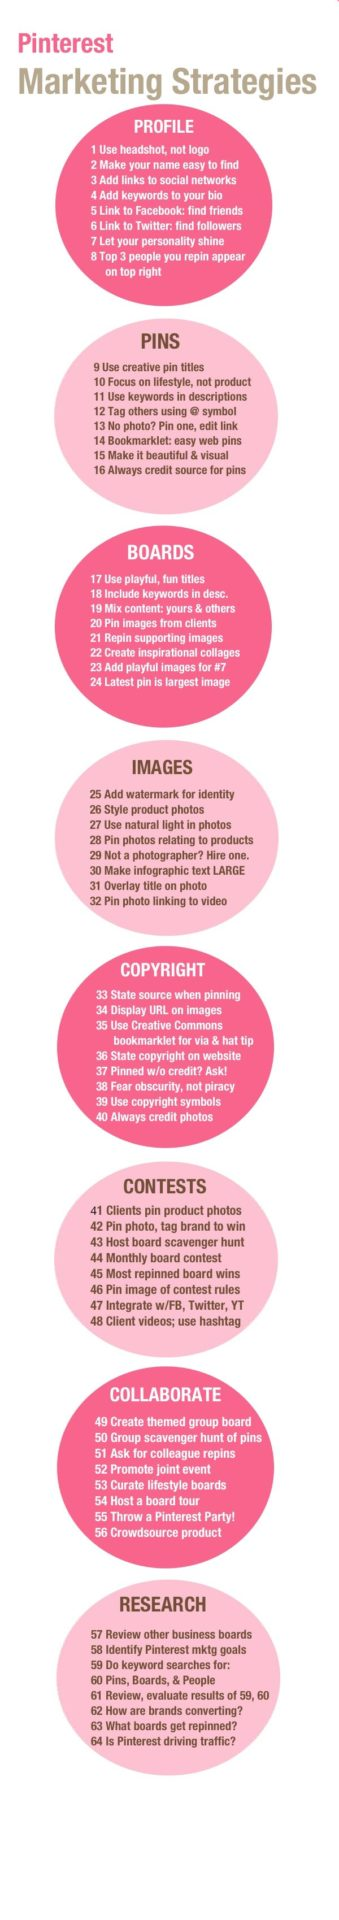 pinterest-tips-infographic